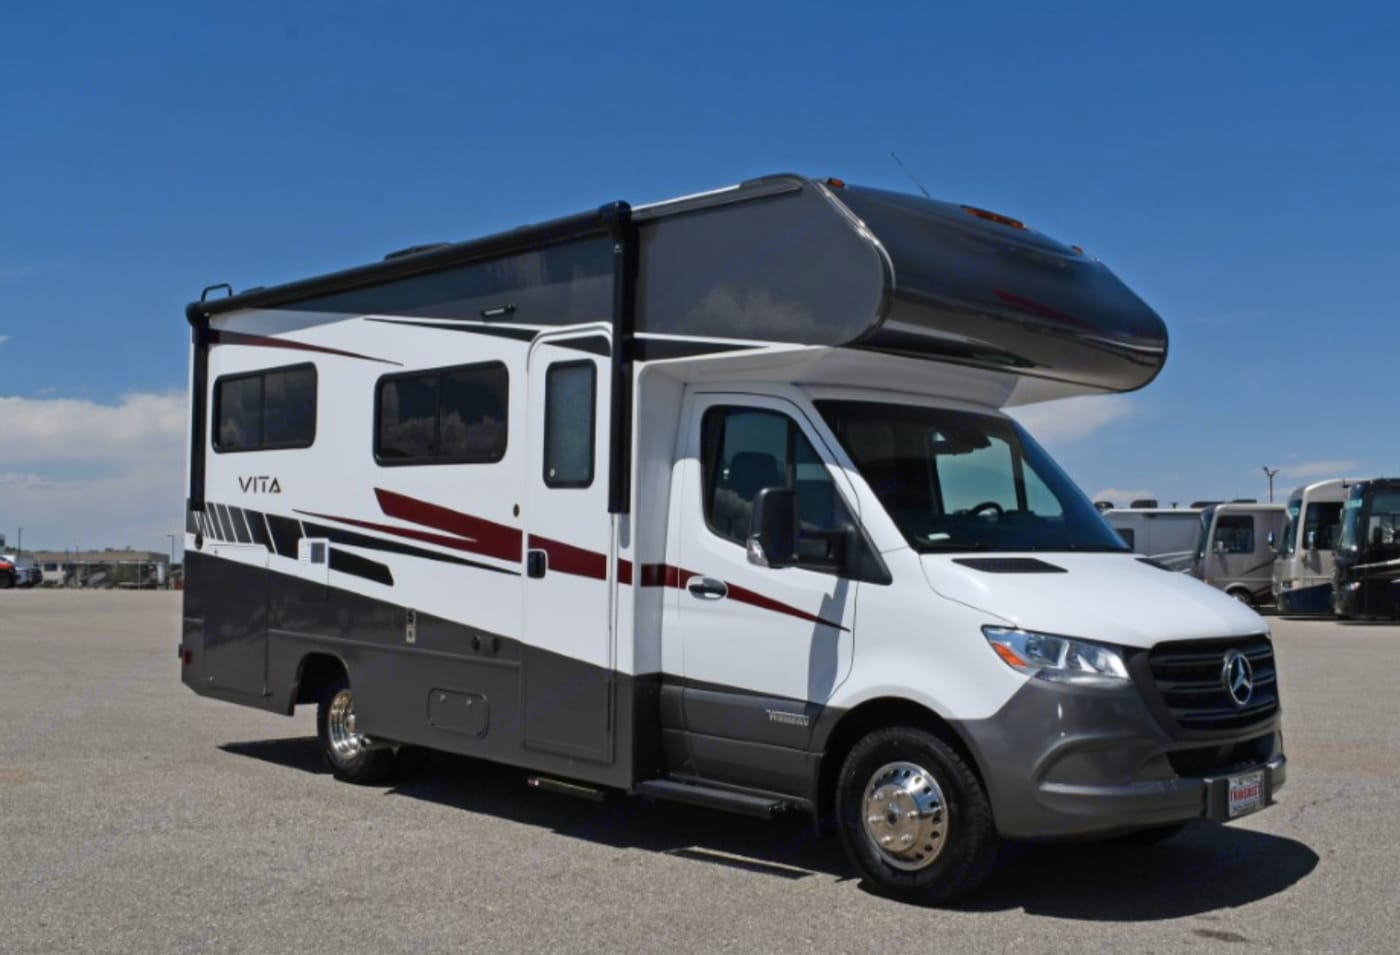 2020 Mercedes Benz Vita 24F Mercedes Benz chassis is a dream to drive on!  Back UP camera making backing up easy,  Navigation, voice activation and the all new designed 7 speed automatic transmission makes this RV so smooth and comfortable to drive!. Winnebago Vita 2020